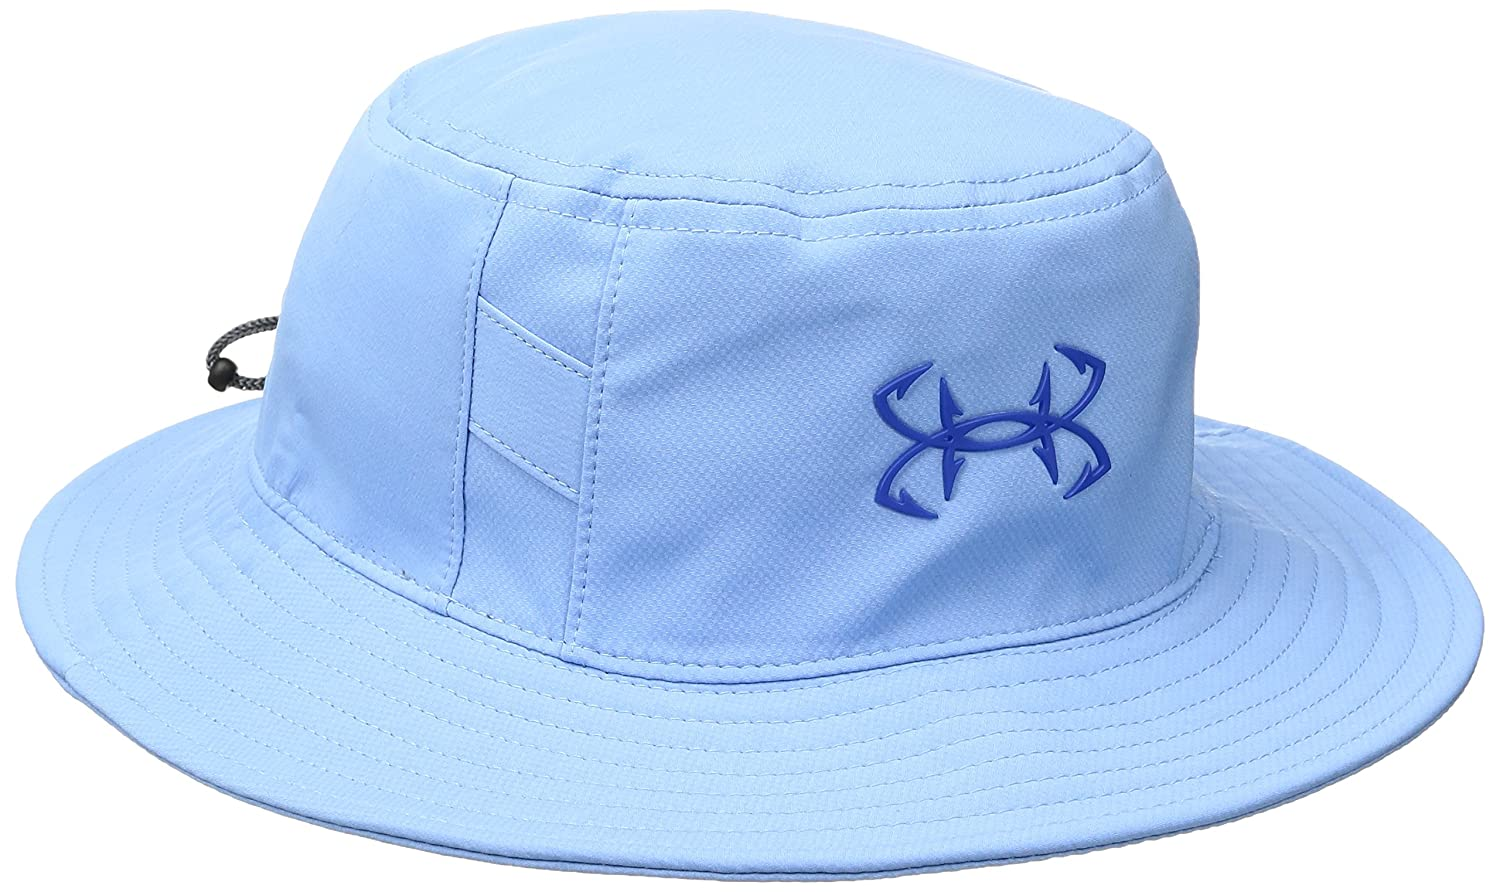 c1bbec77bc3 Amazon.com   Under Armour Men s Fish Hook Bucket Hat